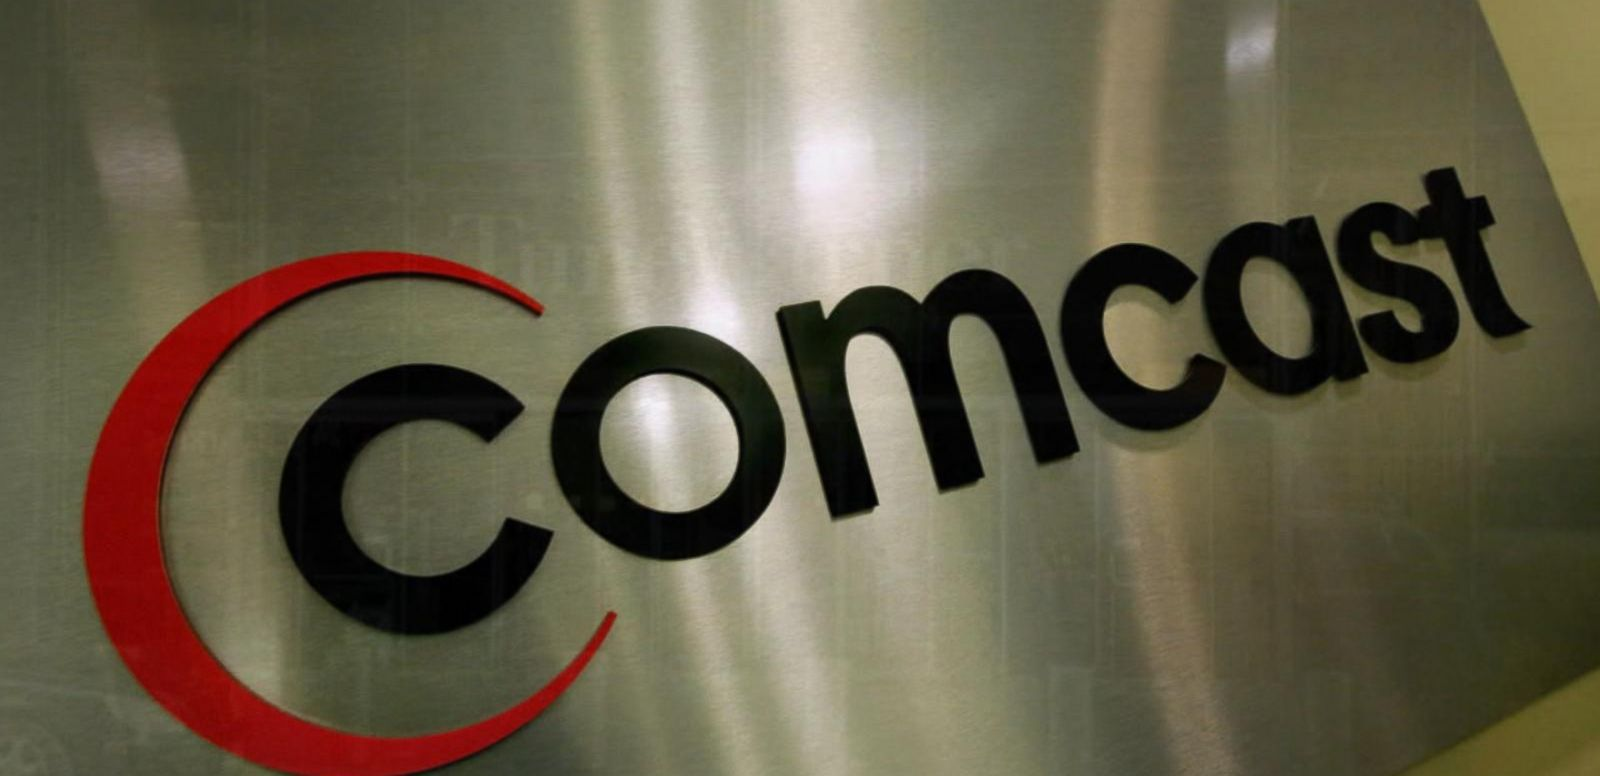 VIDEO: Comcast Terminates Time Warner Cable Merger